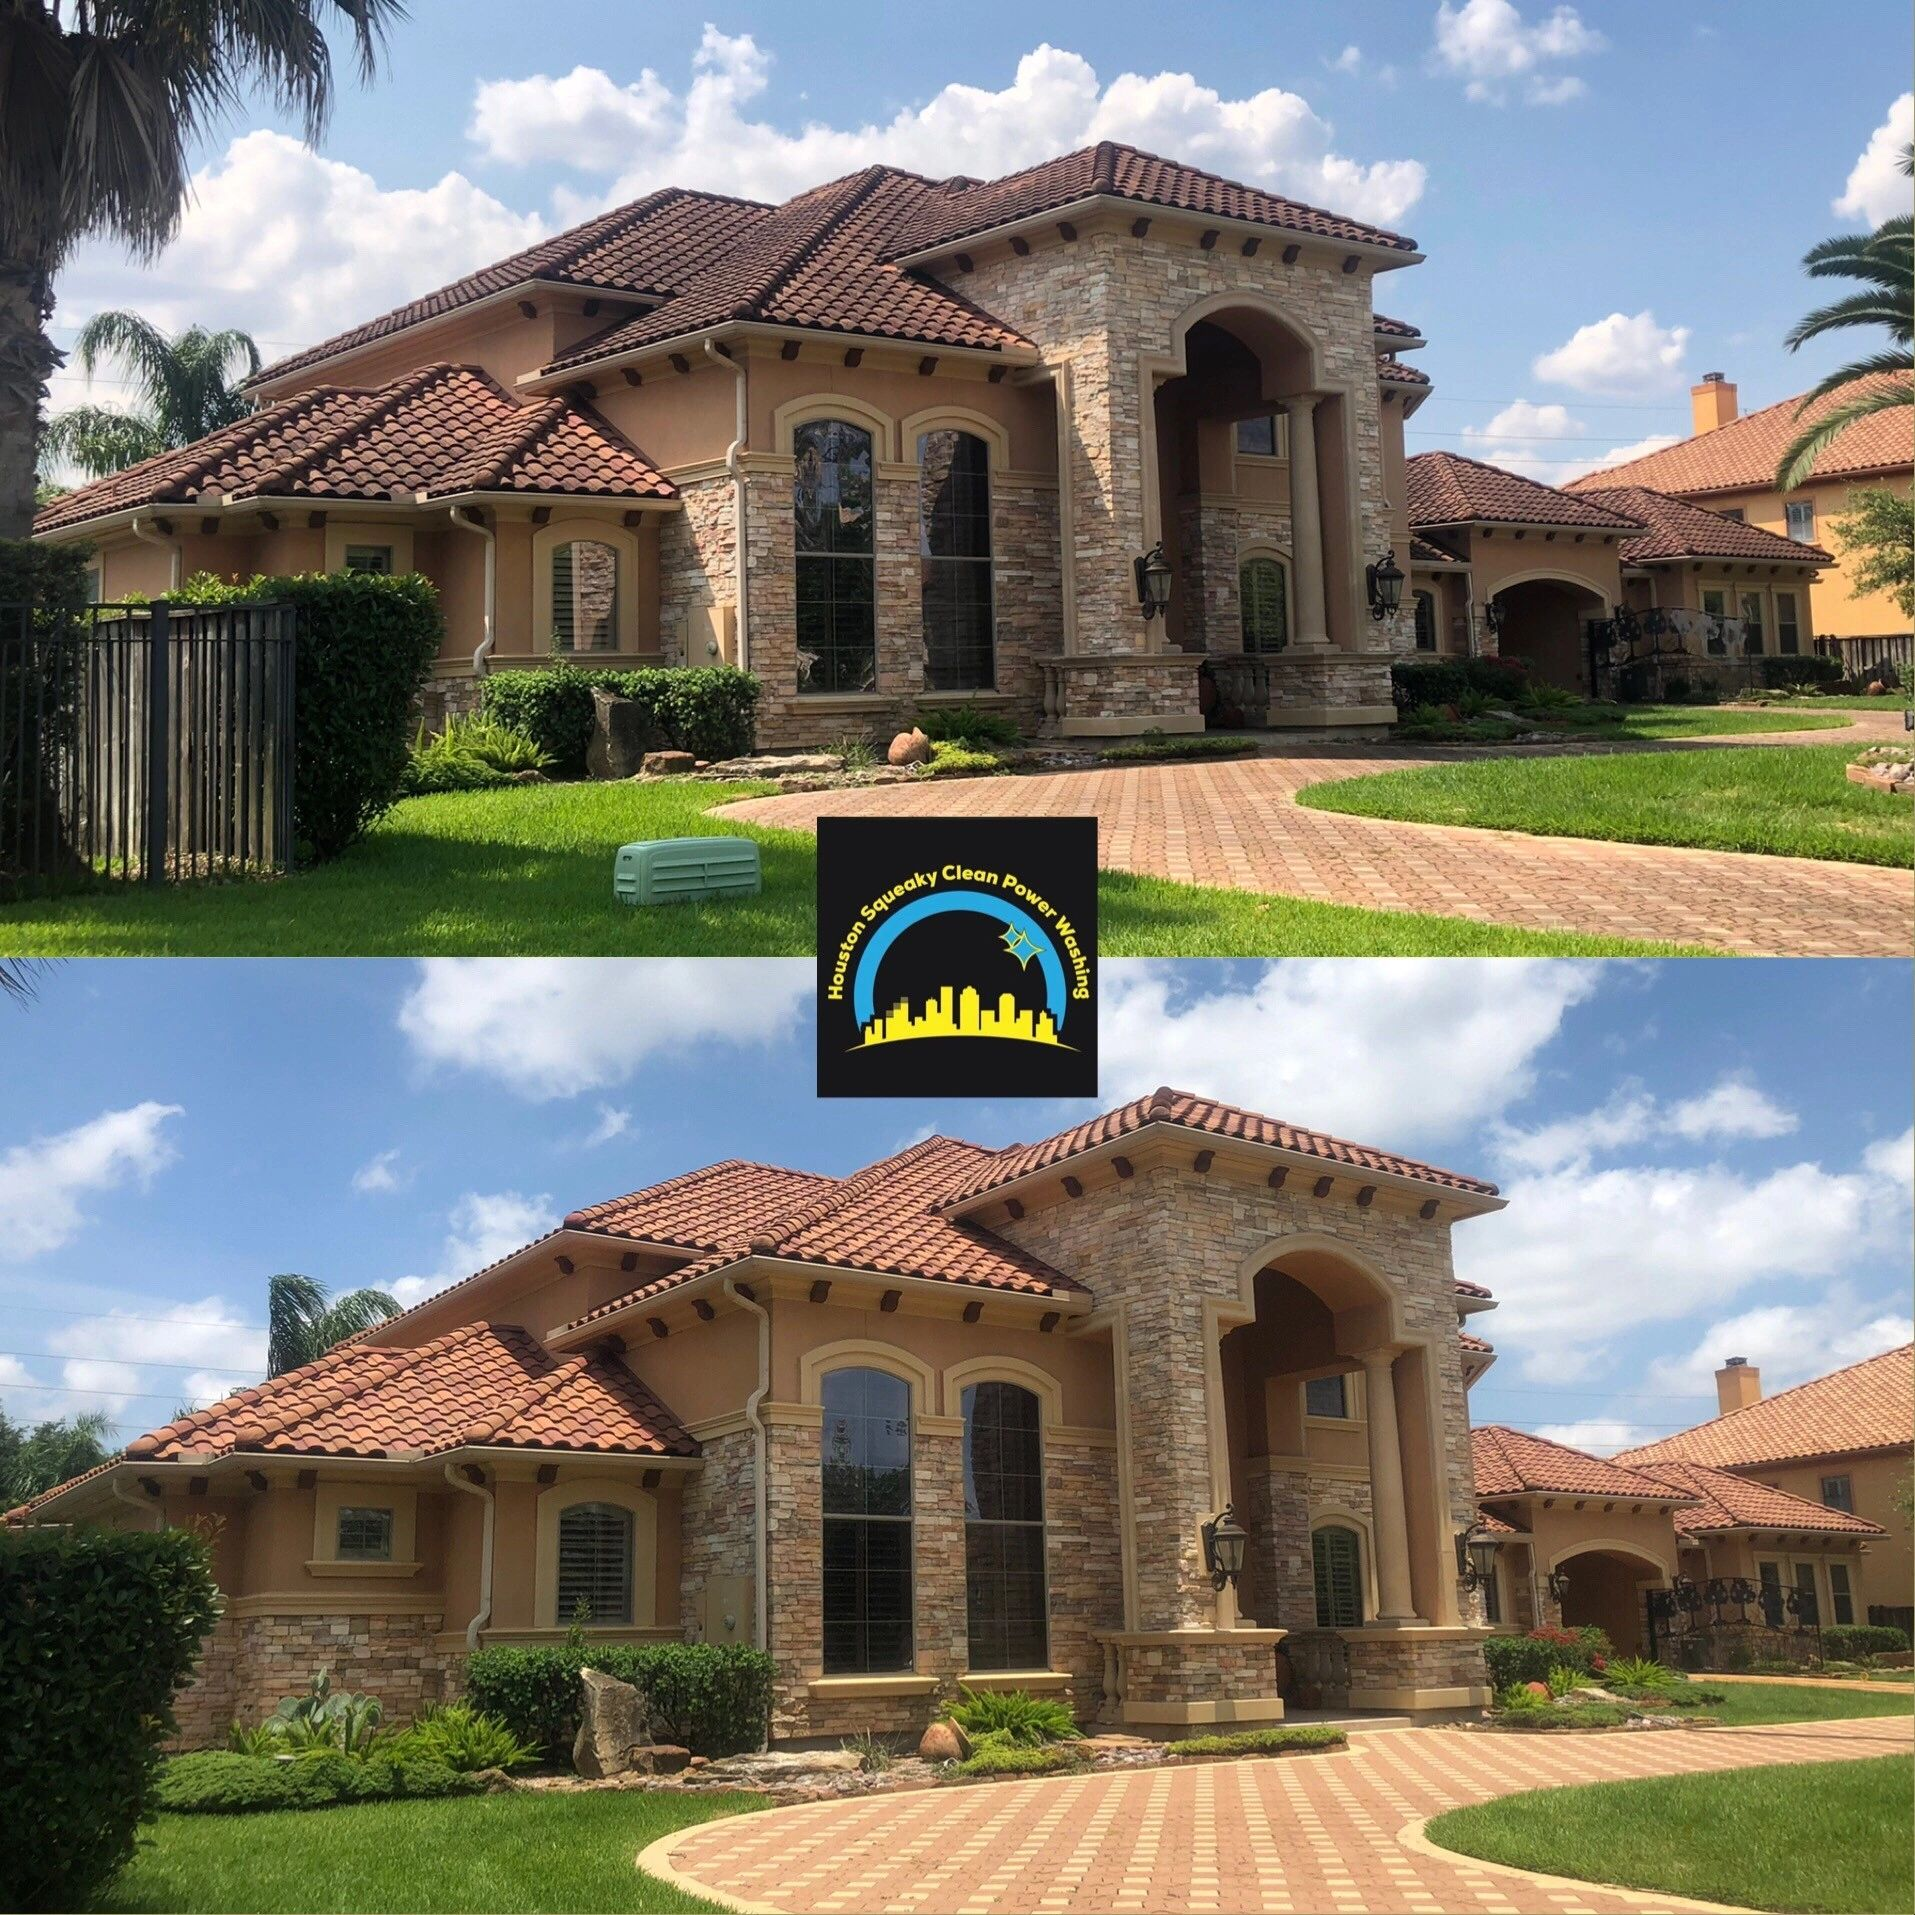 Complete Exterior Cleaning; roof wash, house wash and driveway cleaning.